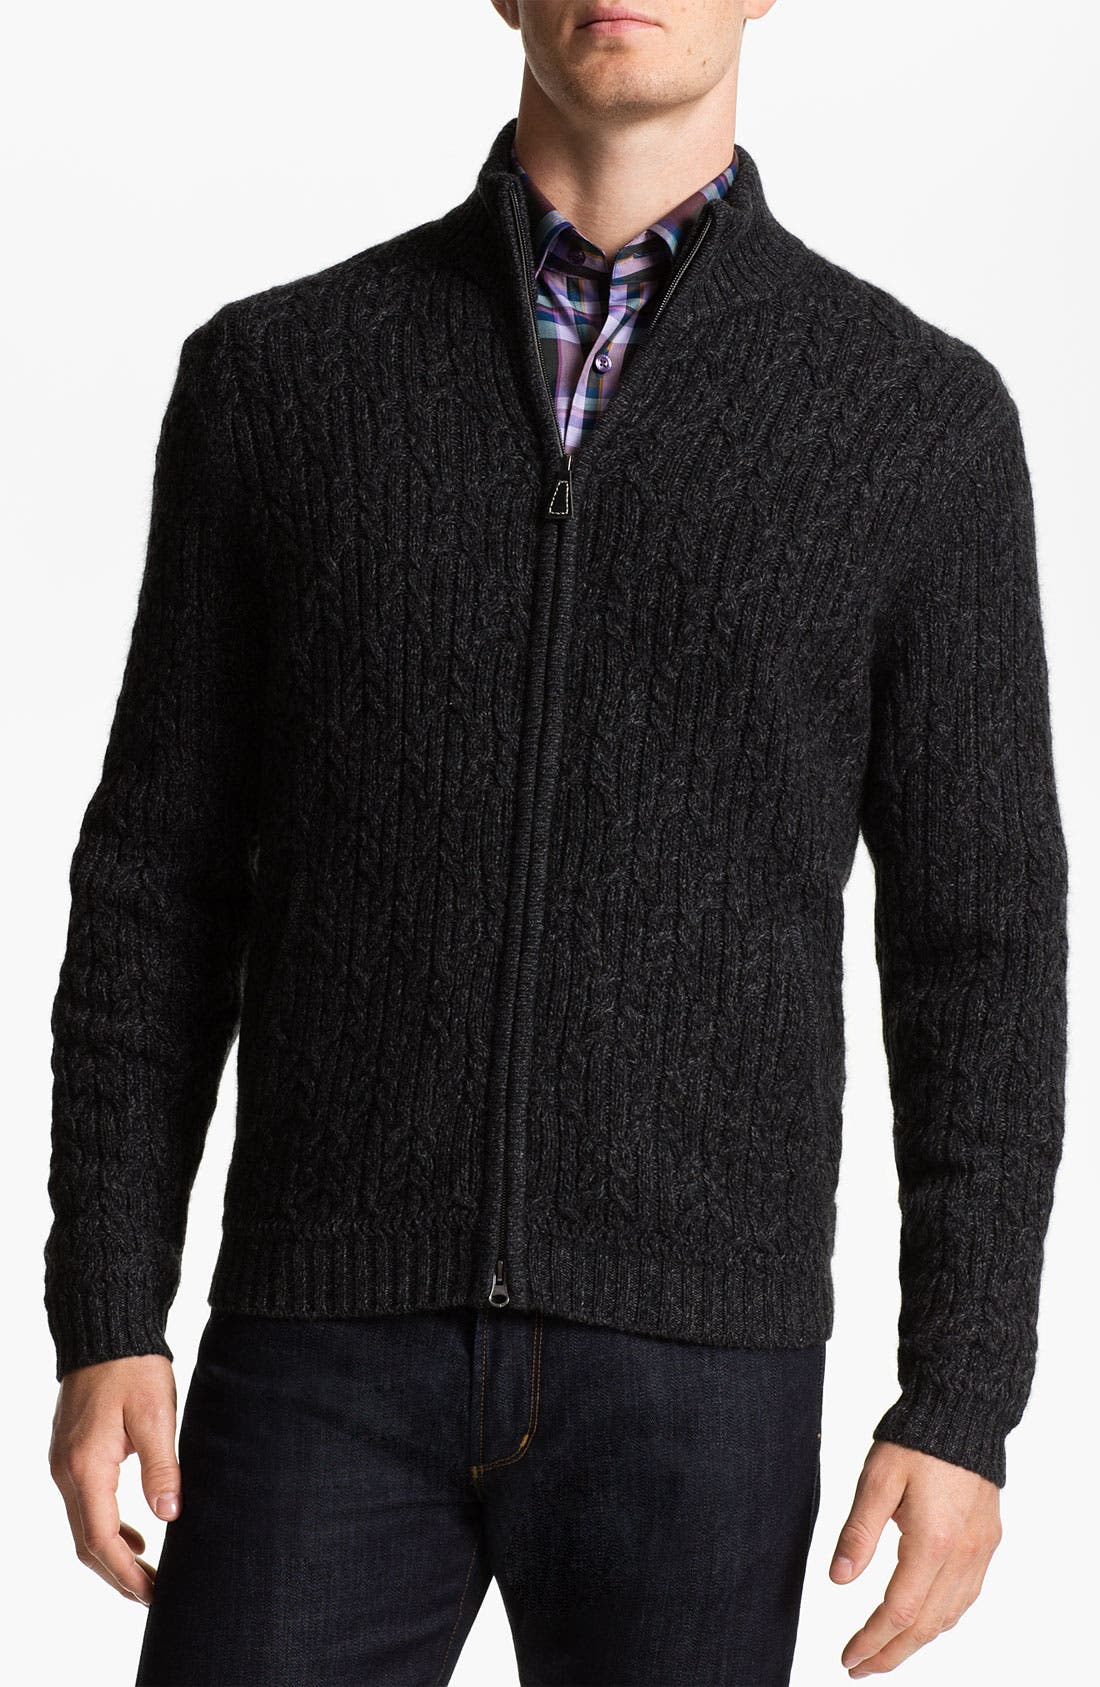 Main Image - John W. Nordstrom® Cable Knit Cashmere Cardigan